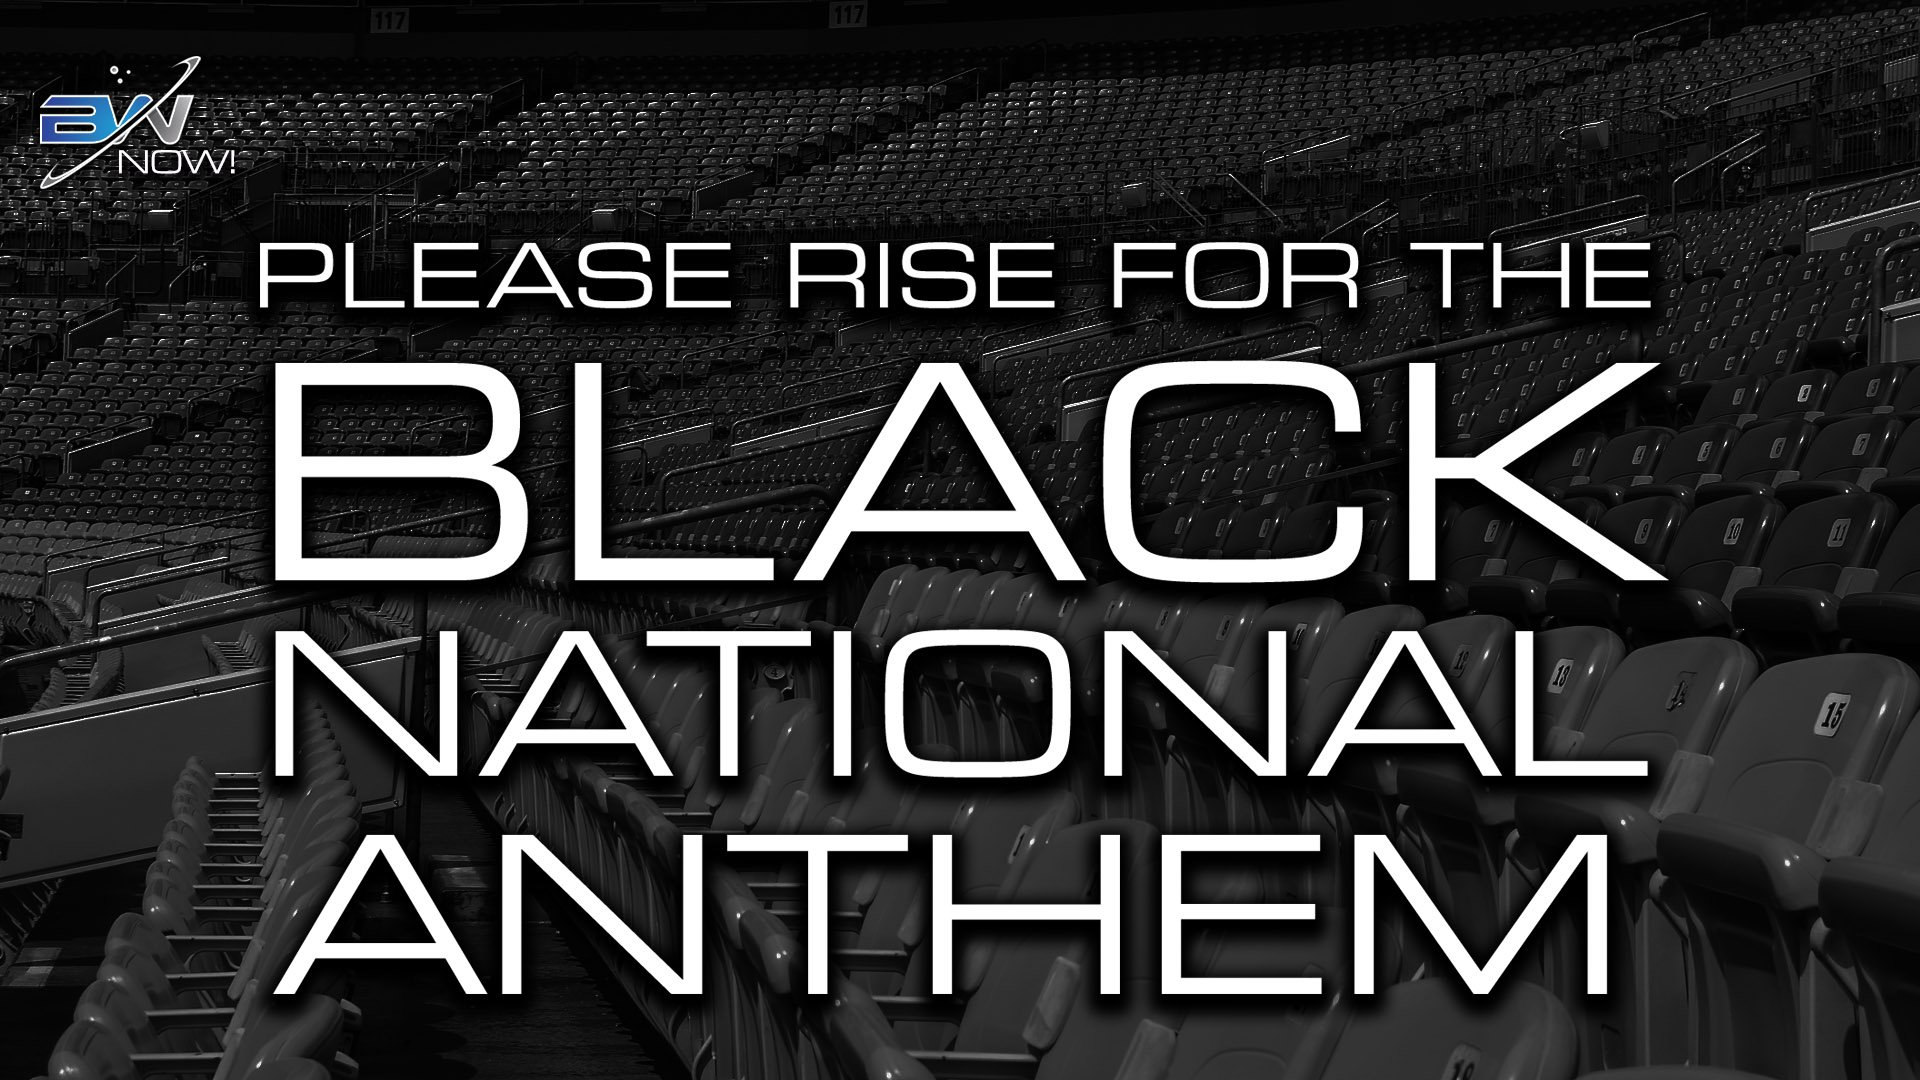 Token Justice? NFL to Kickoff 2020 Season with 'Black National Anthem'